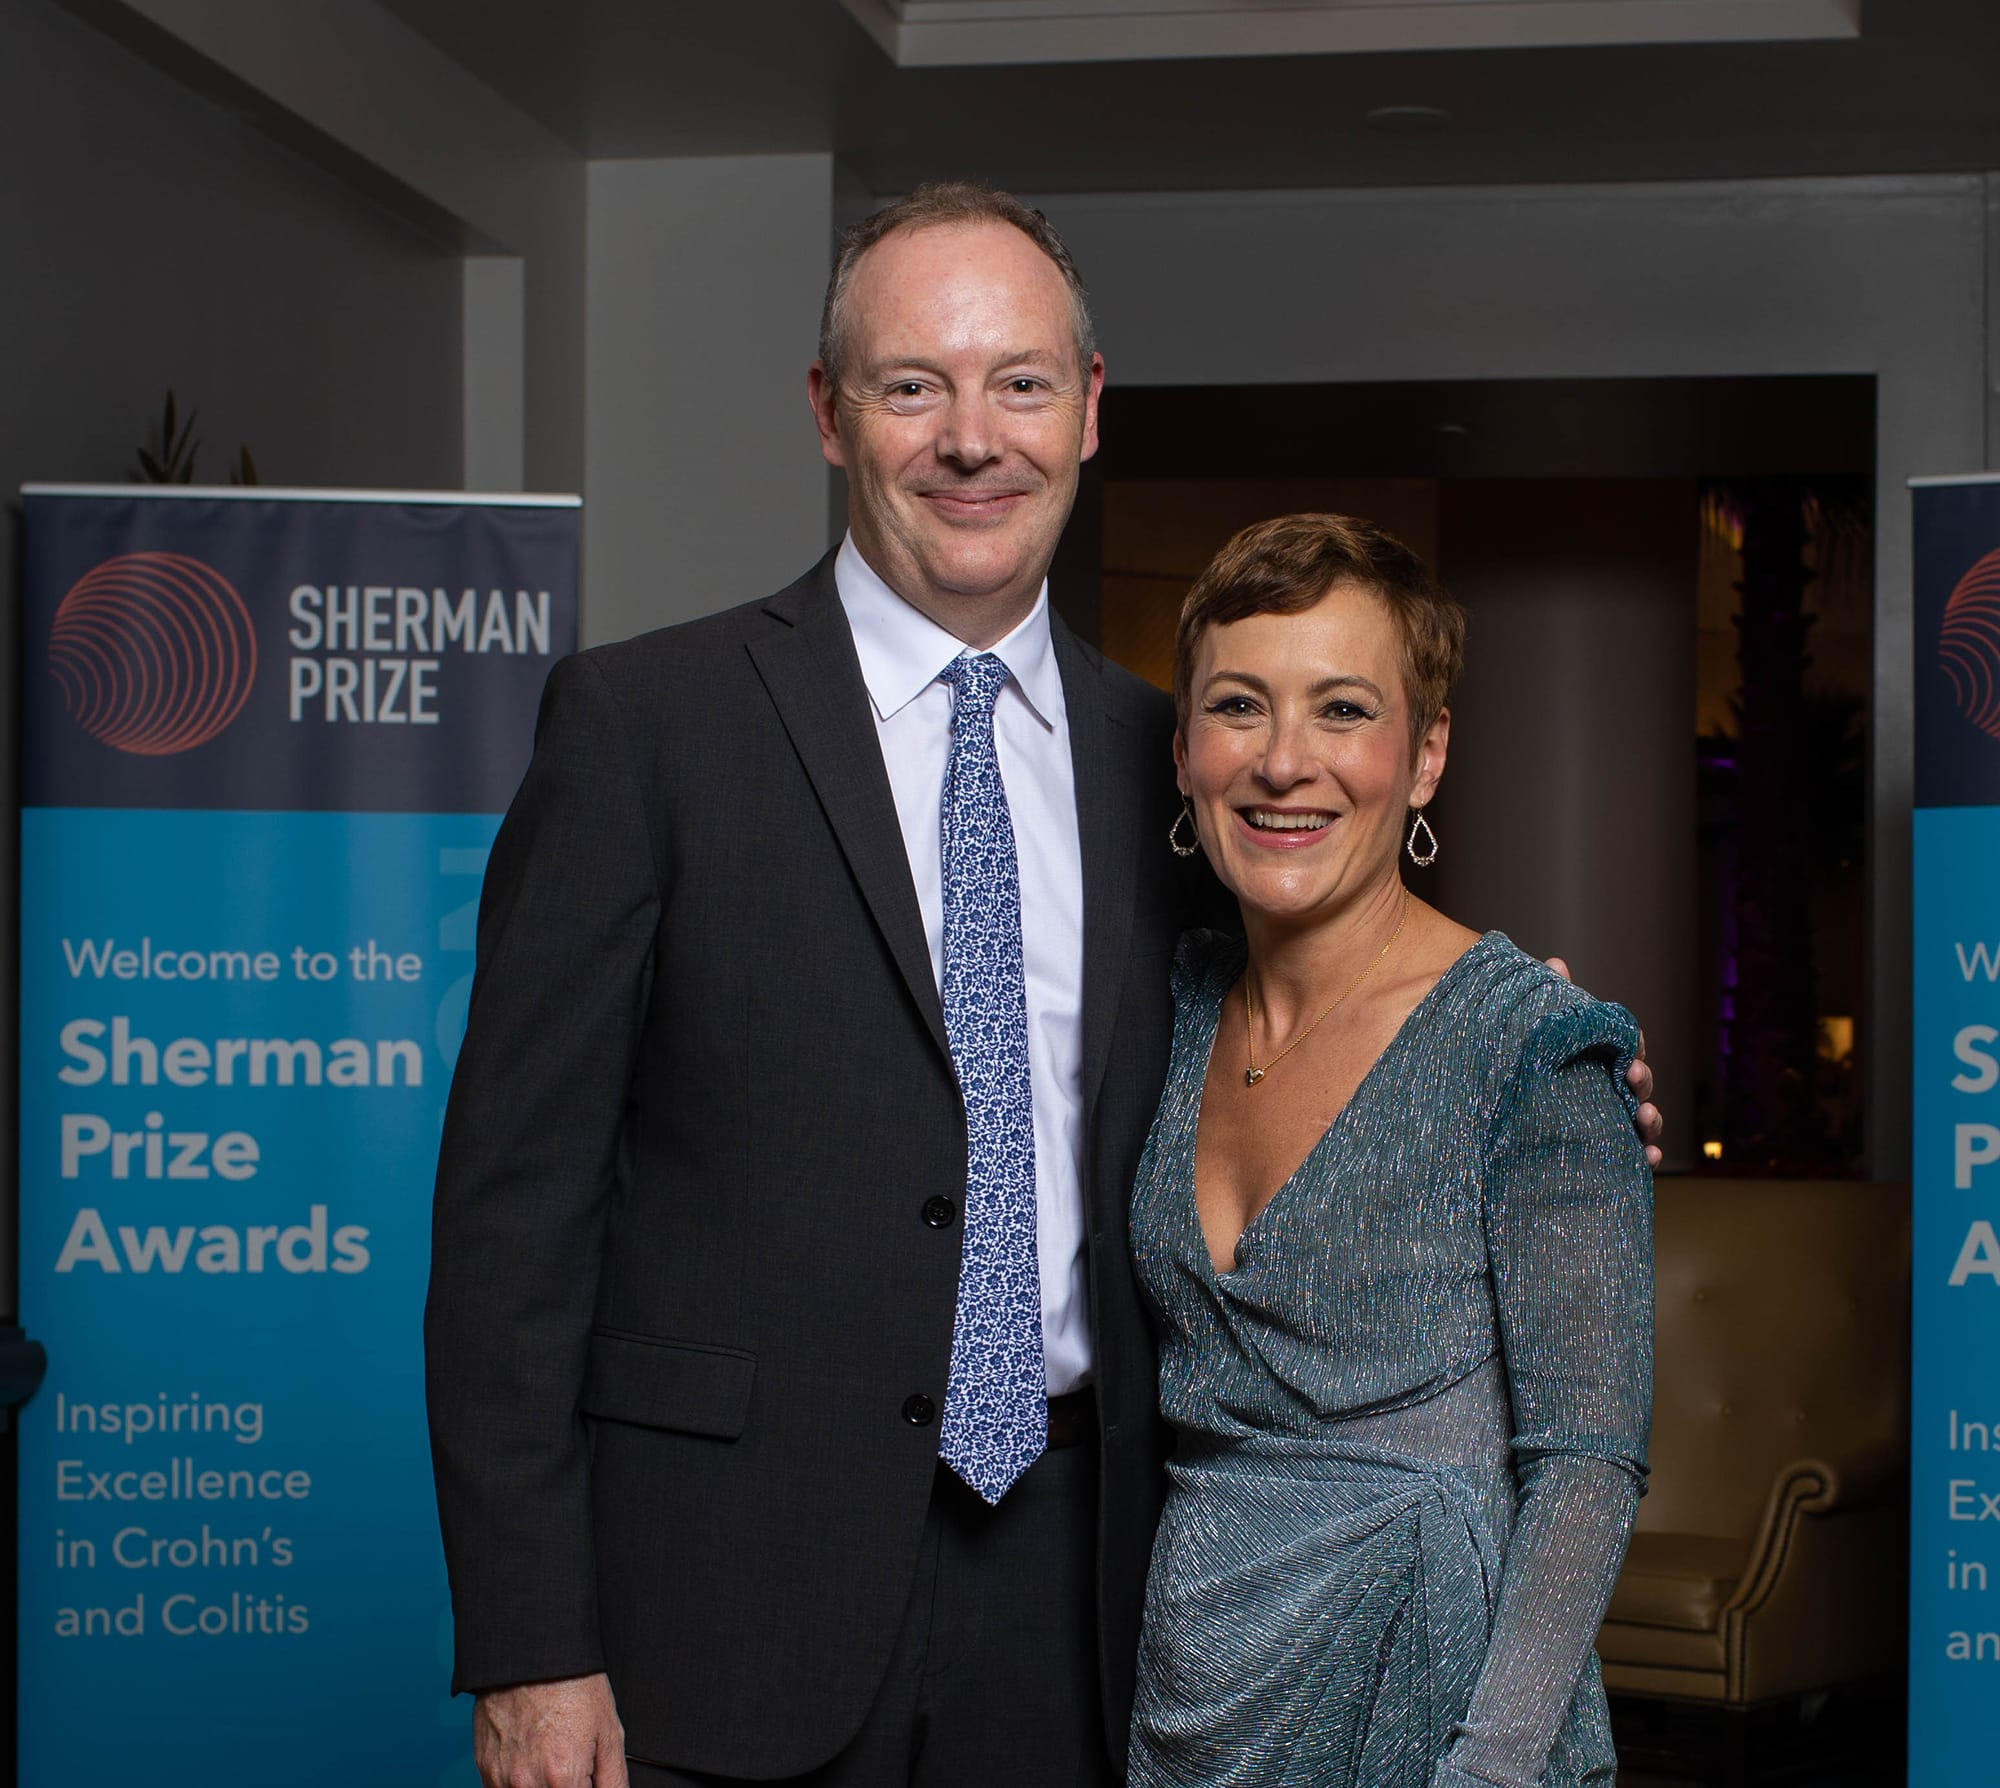 <p>2019 Selection Committee Chair Dr. Dermot McGovern and 2019 Sherman Prize Recipient Dr. Maria Abreu</p>